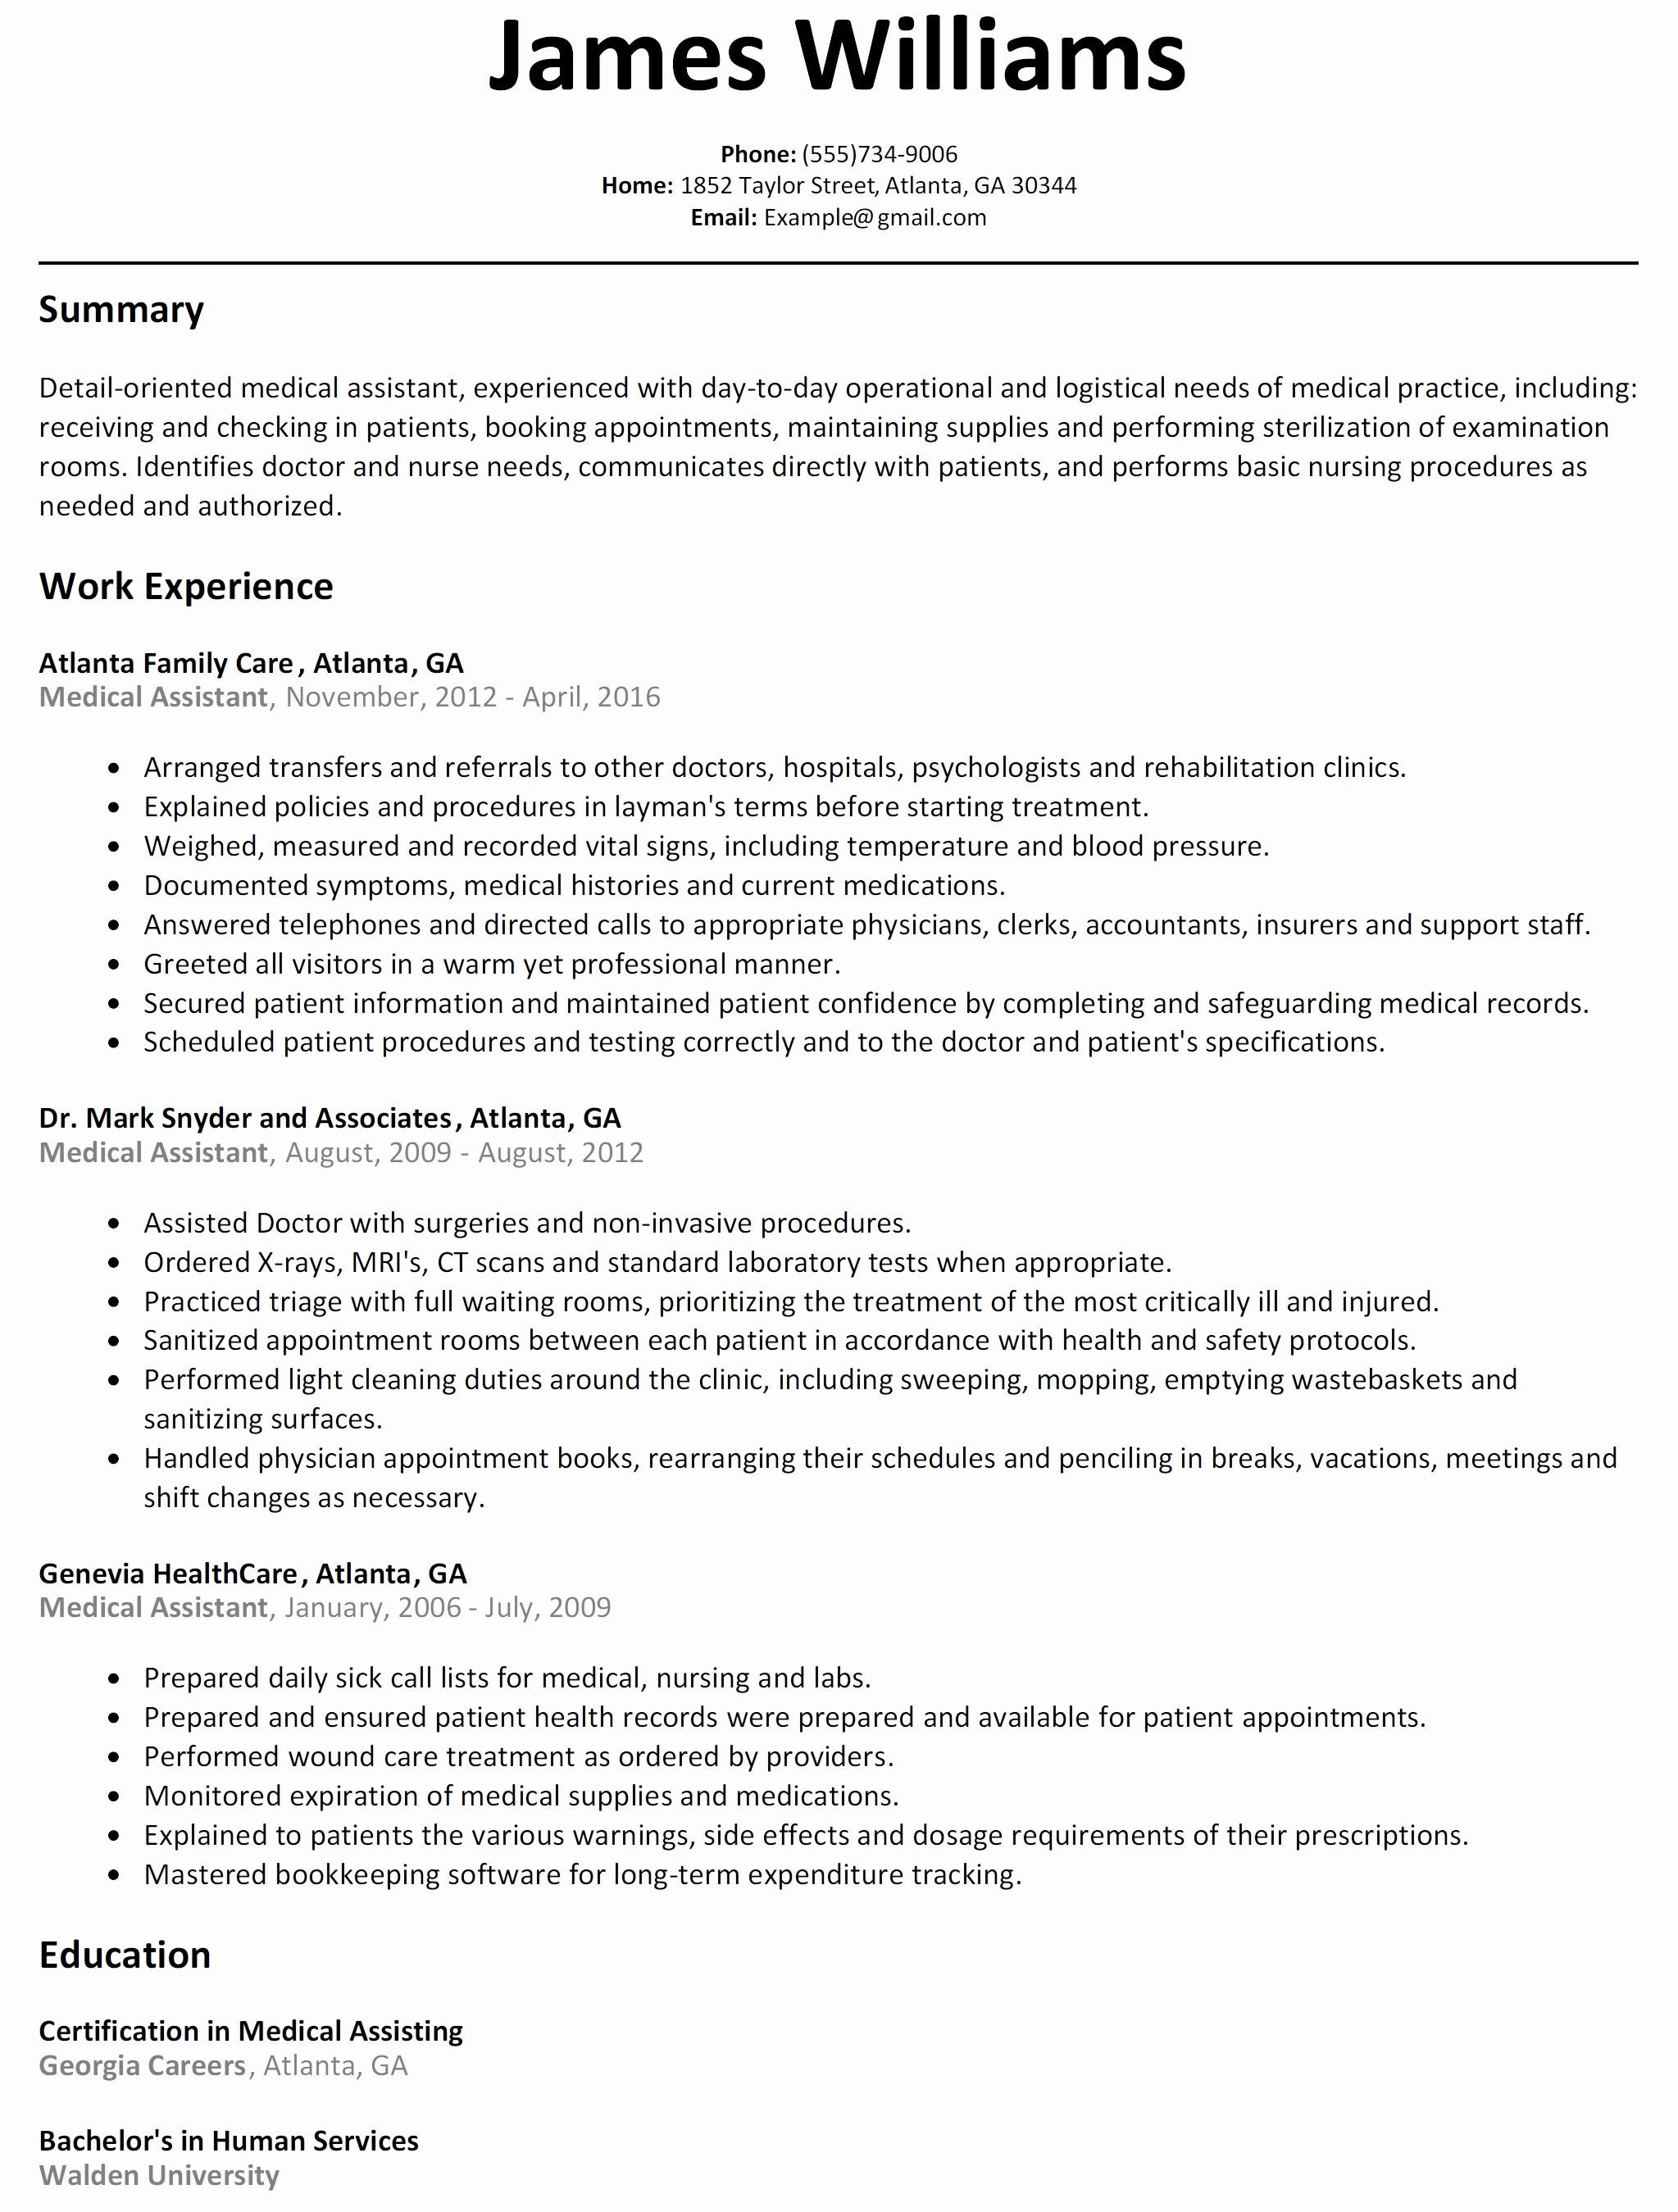 82 Nice Customer Service Resume Objective Or Summary Examples with Pictures